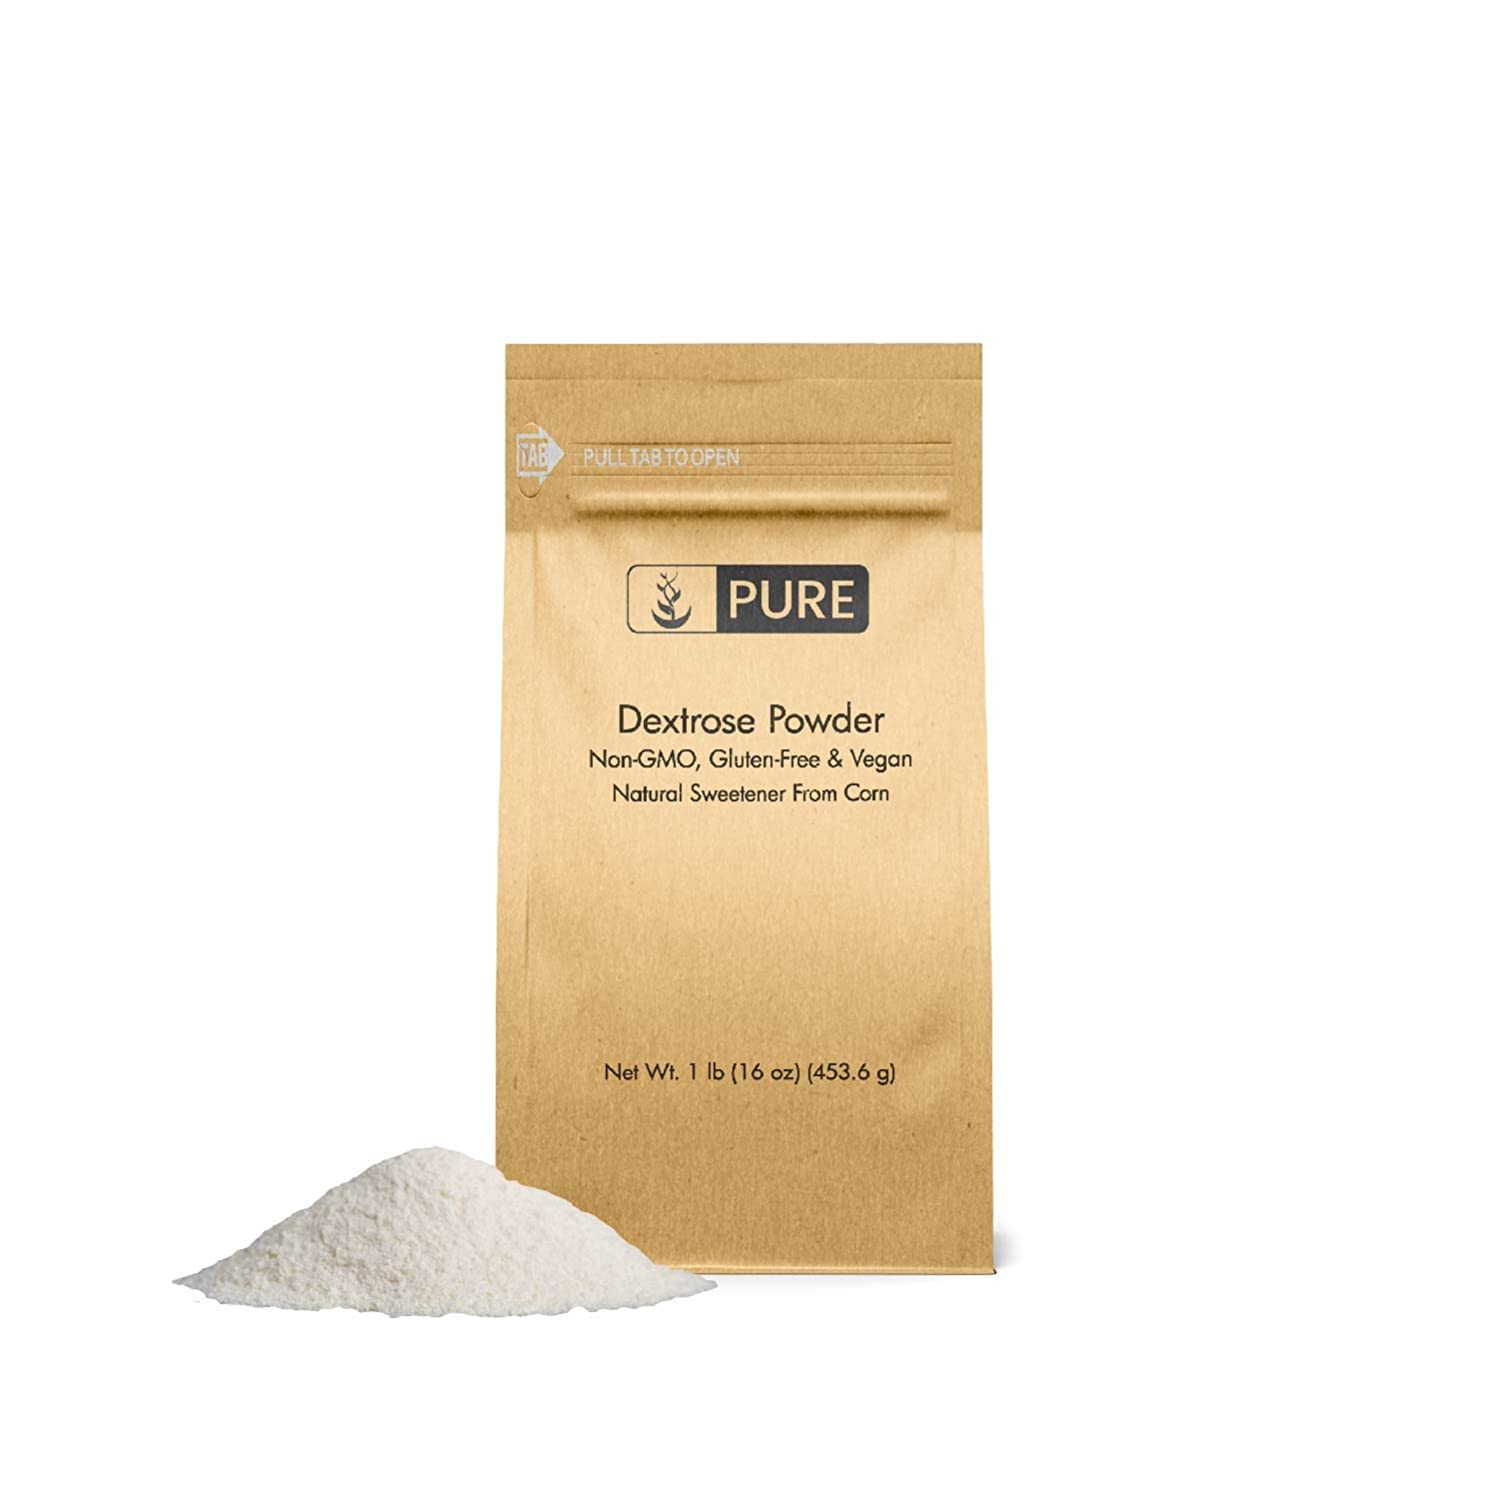 Dextrose (1 lb.) by Pure, Sugar Replacement Sweetener For Shakes or Baking